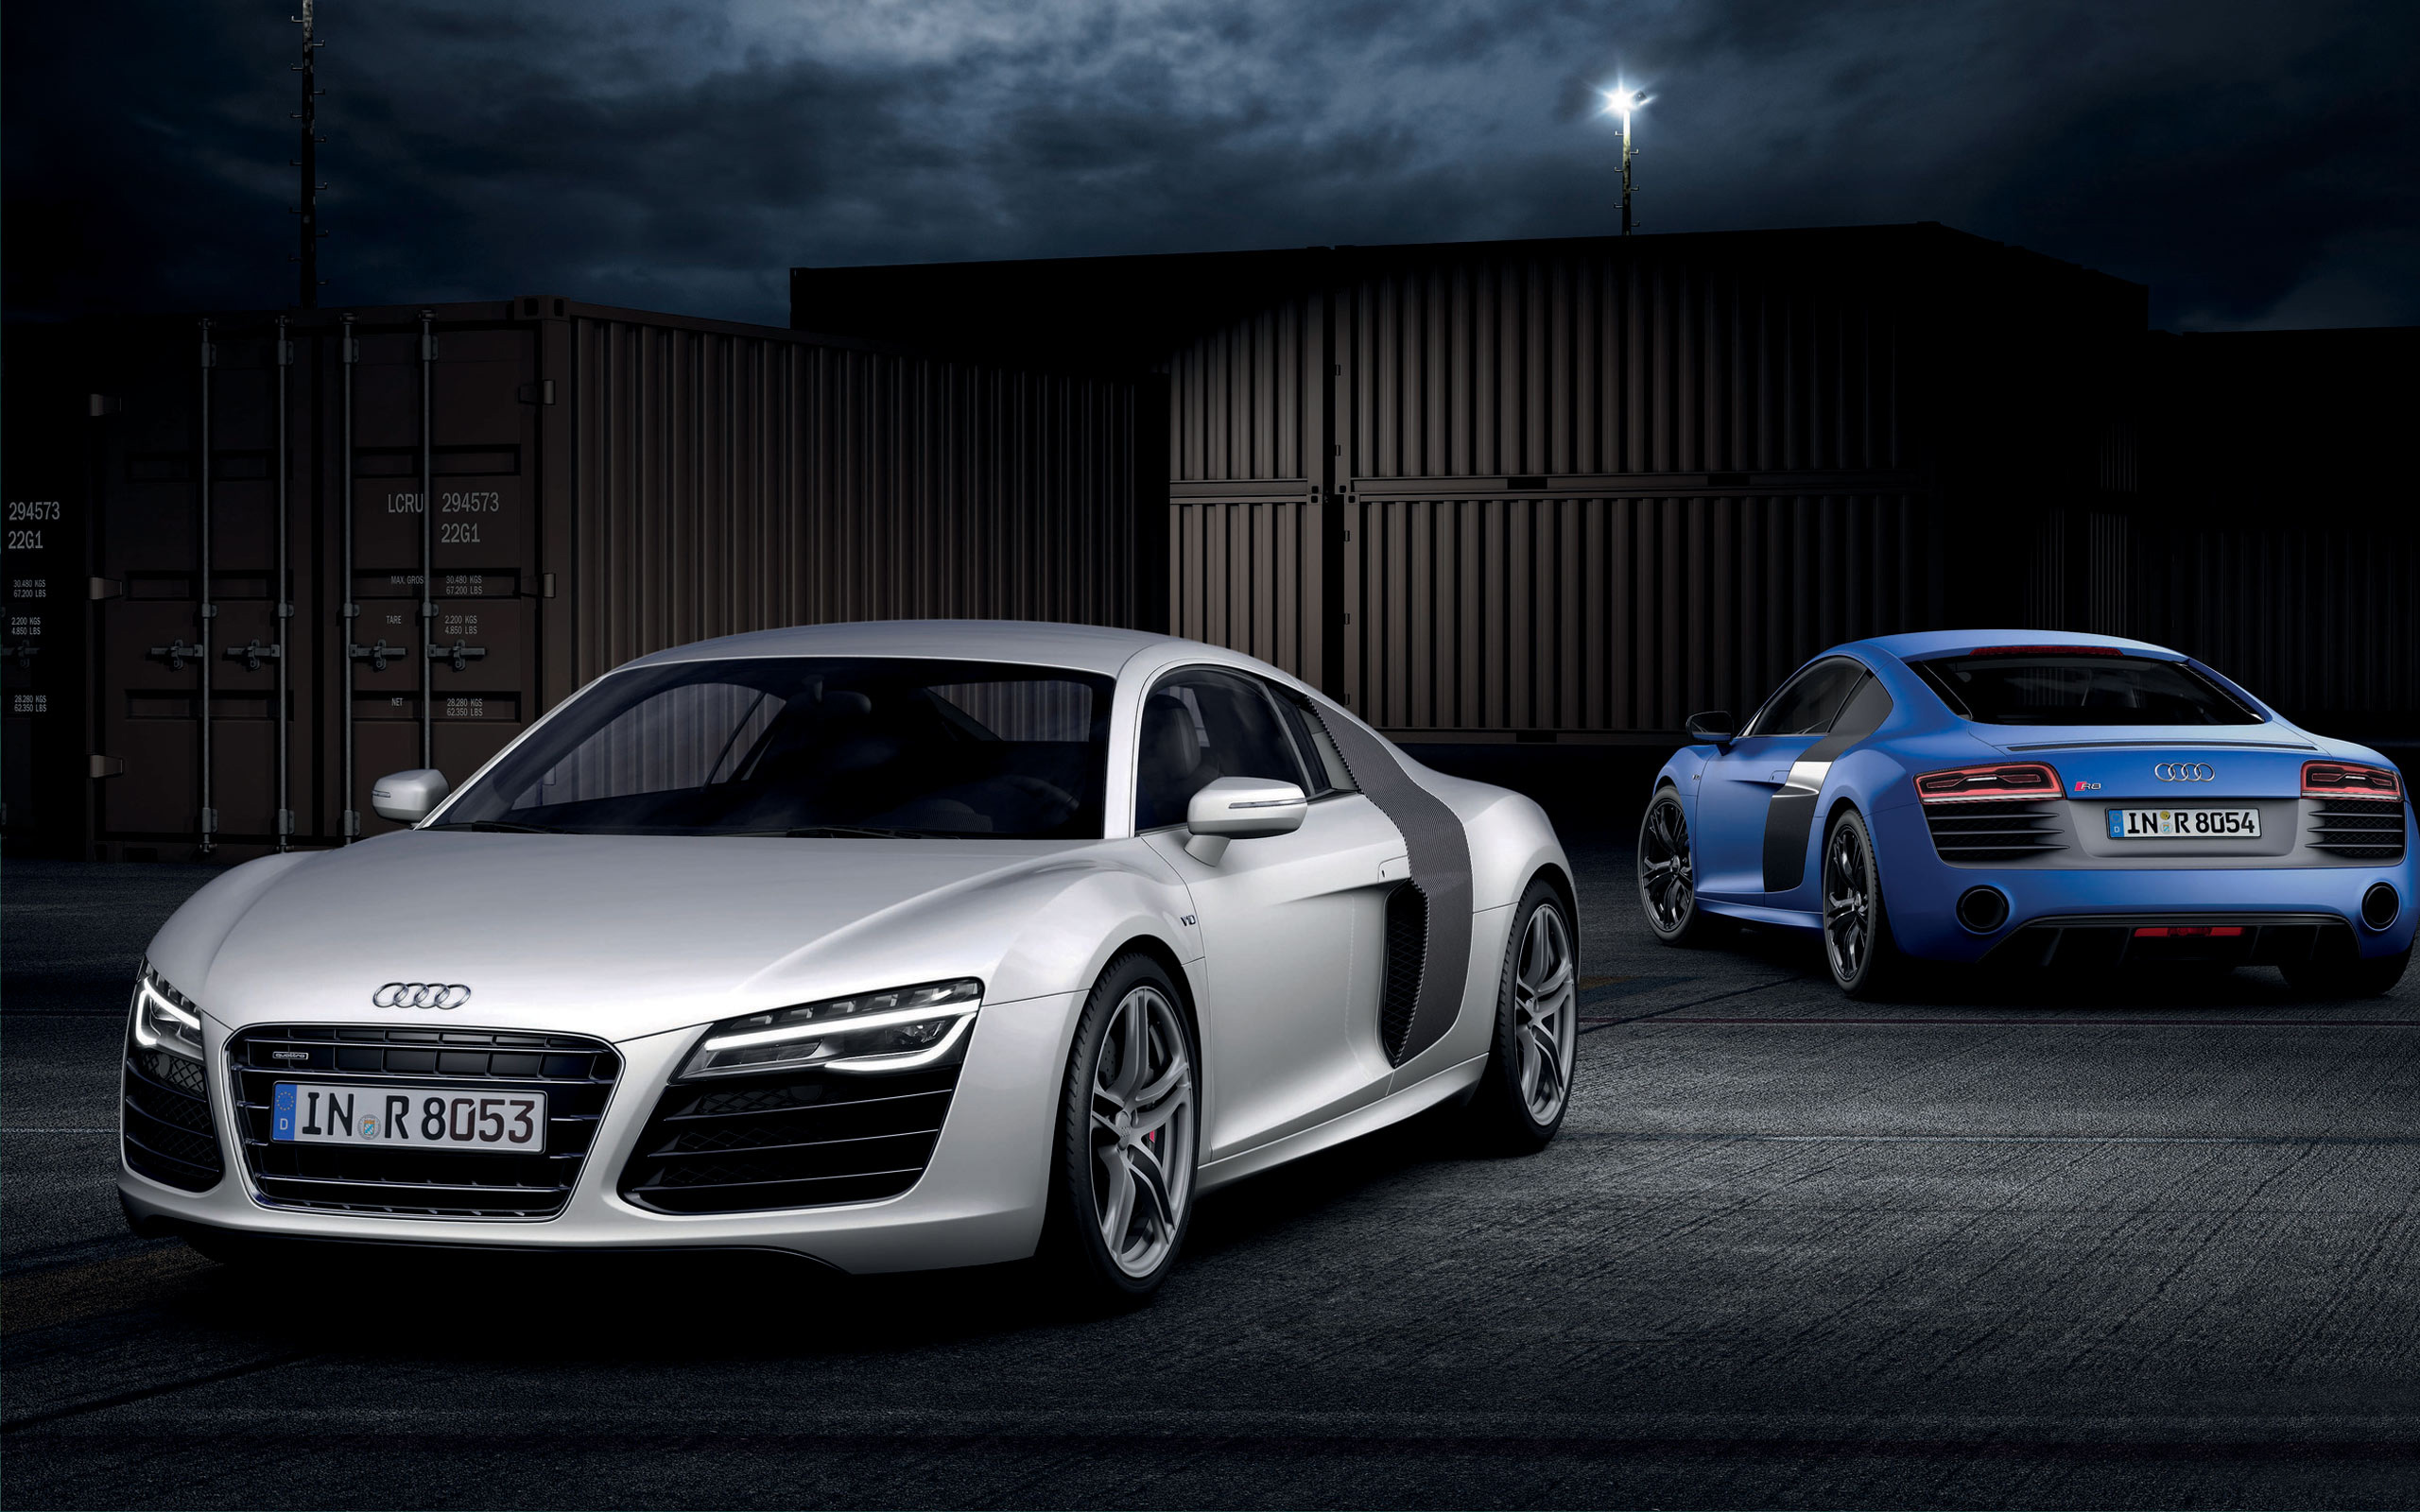 2013 Audi R8 V10 plus 10 Wallpaper 2560x1600